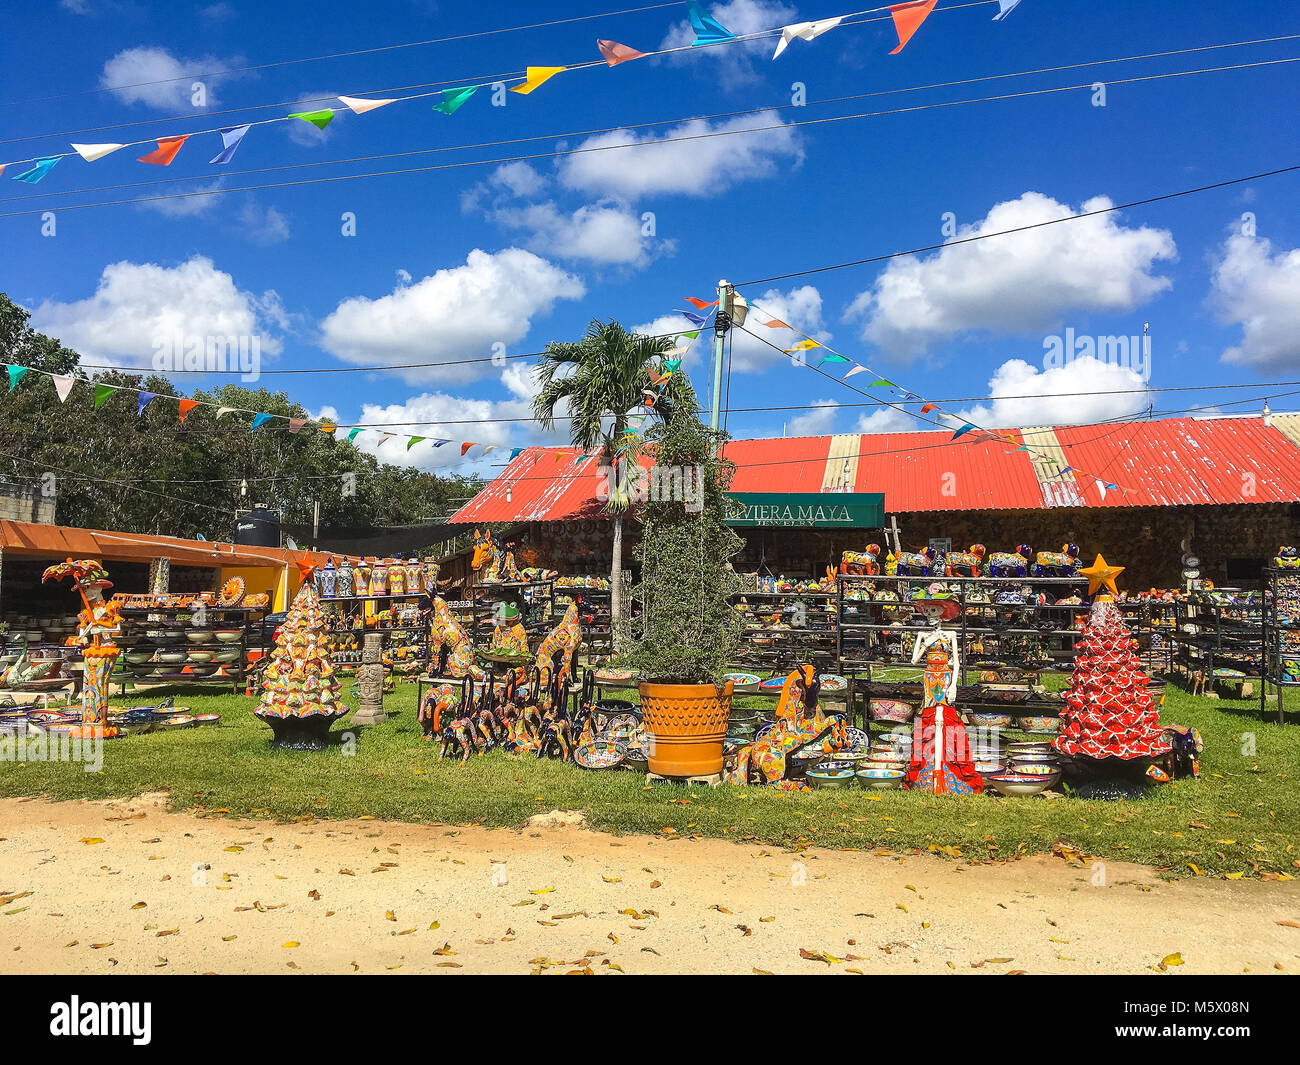 Coba, Mexico - February 4,2018: The local colorful tourist shop selling traditional mexican souvenirs. - Stock Image